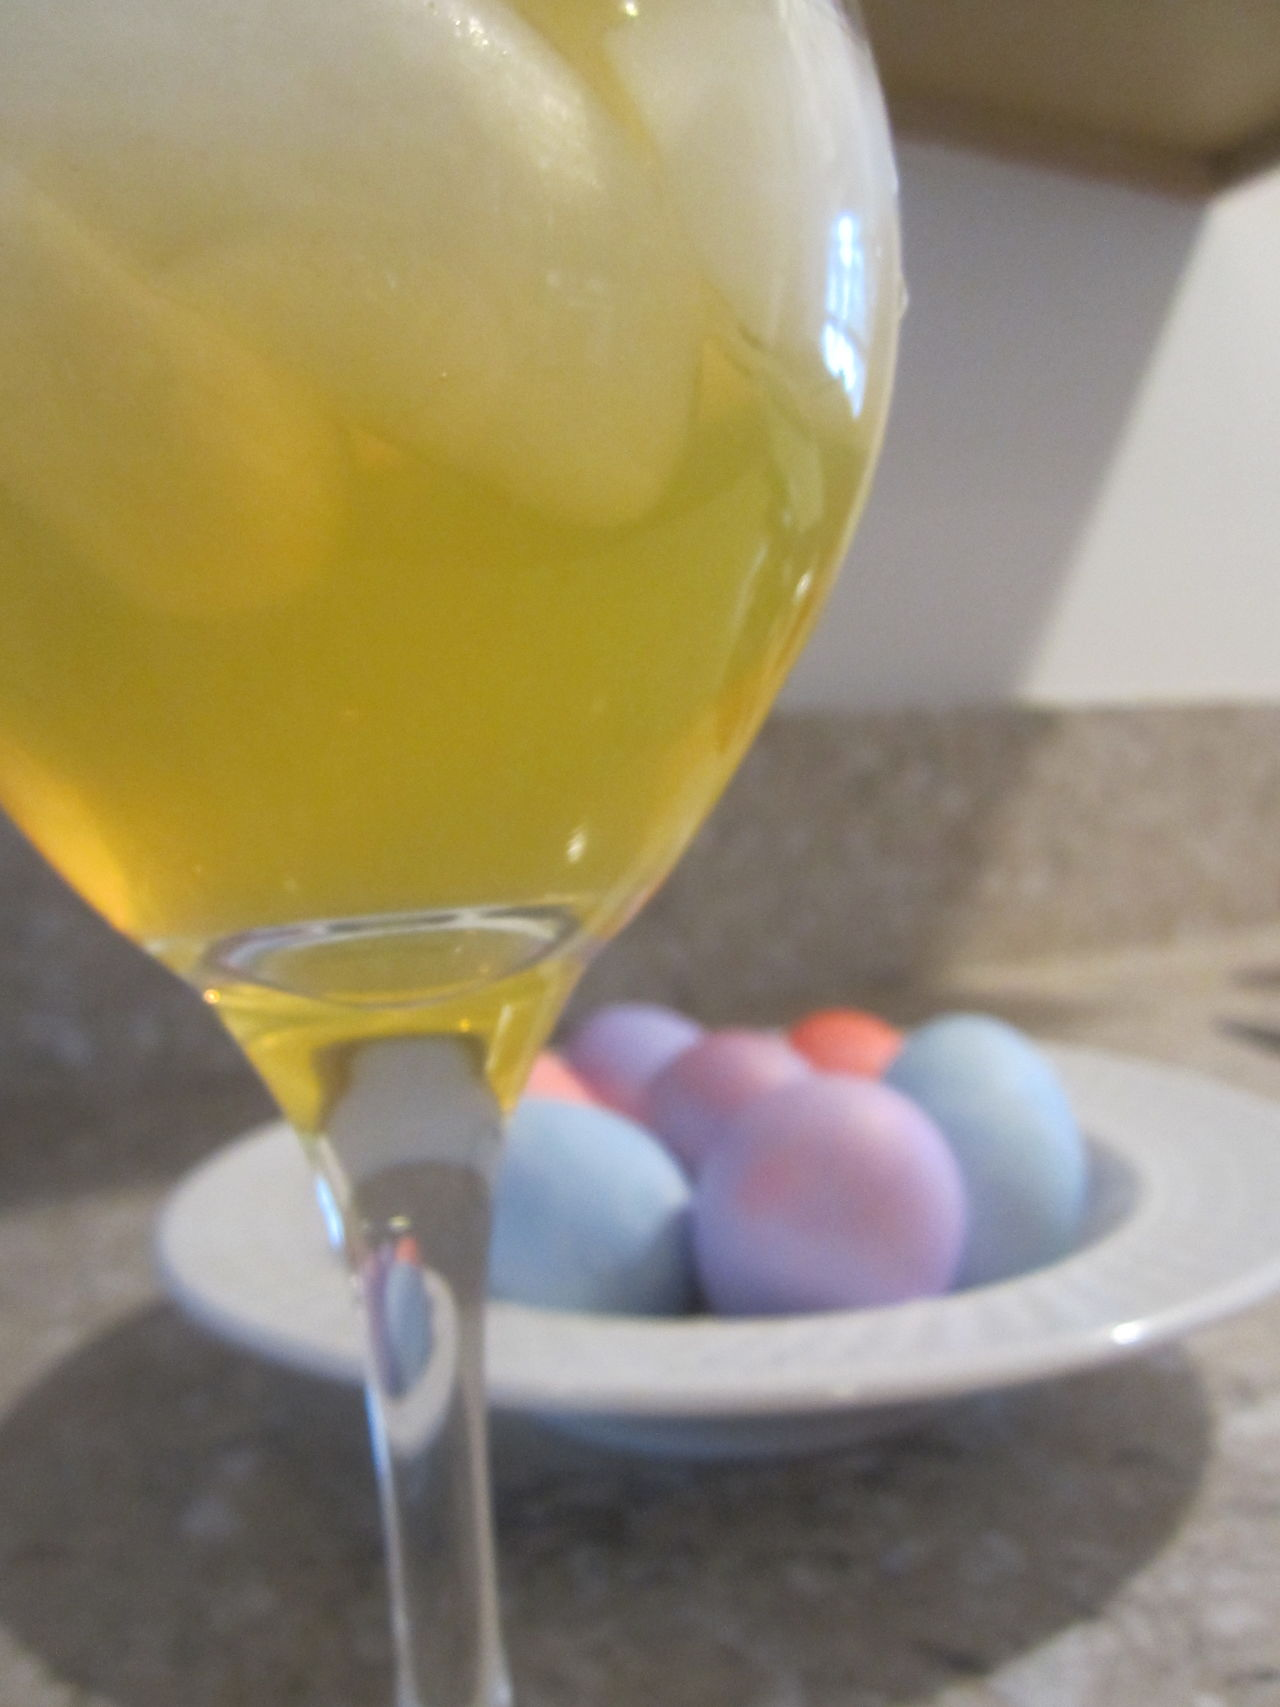 Beverage Close-up Cocktail Colored Eggs Colorful Easter Eggs Easter Ready Focus On Foreground Freshness Ice Cubes Mimosa Refreshment Selective Focus